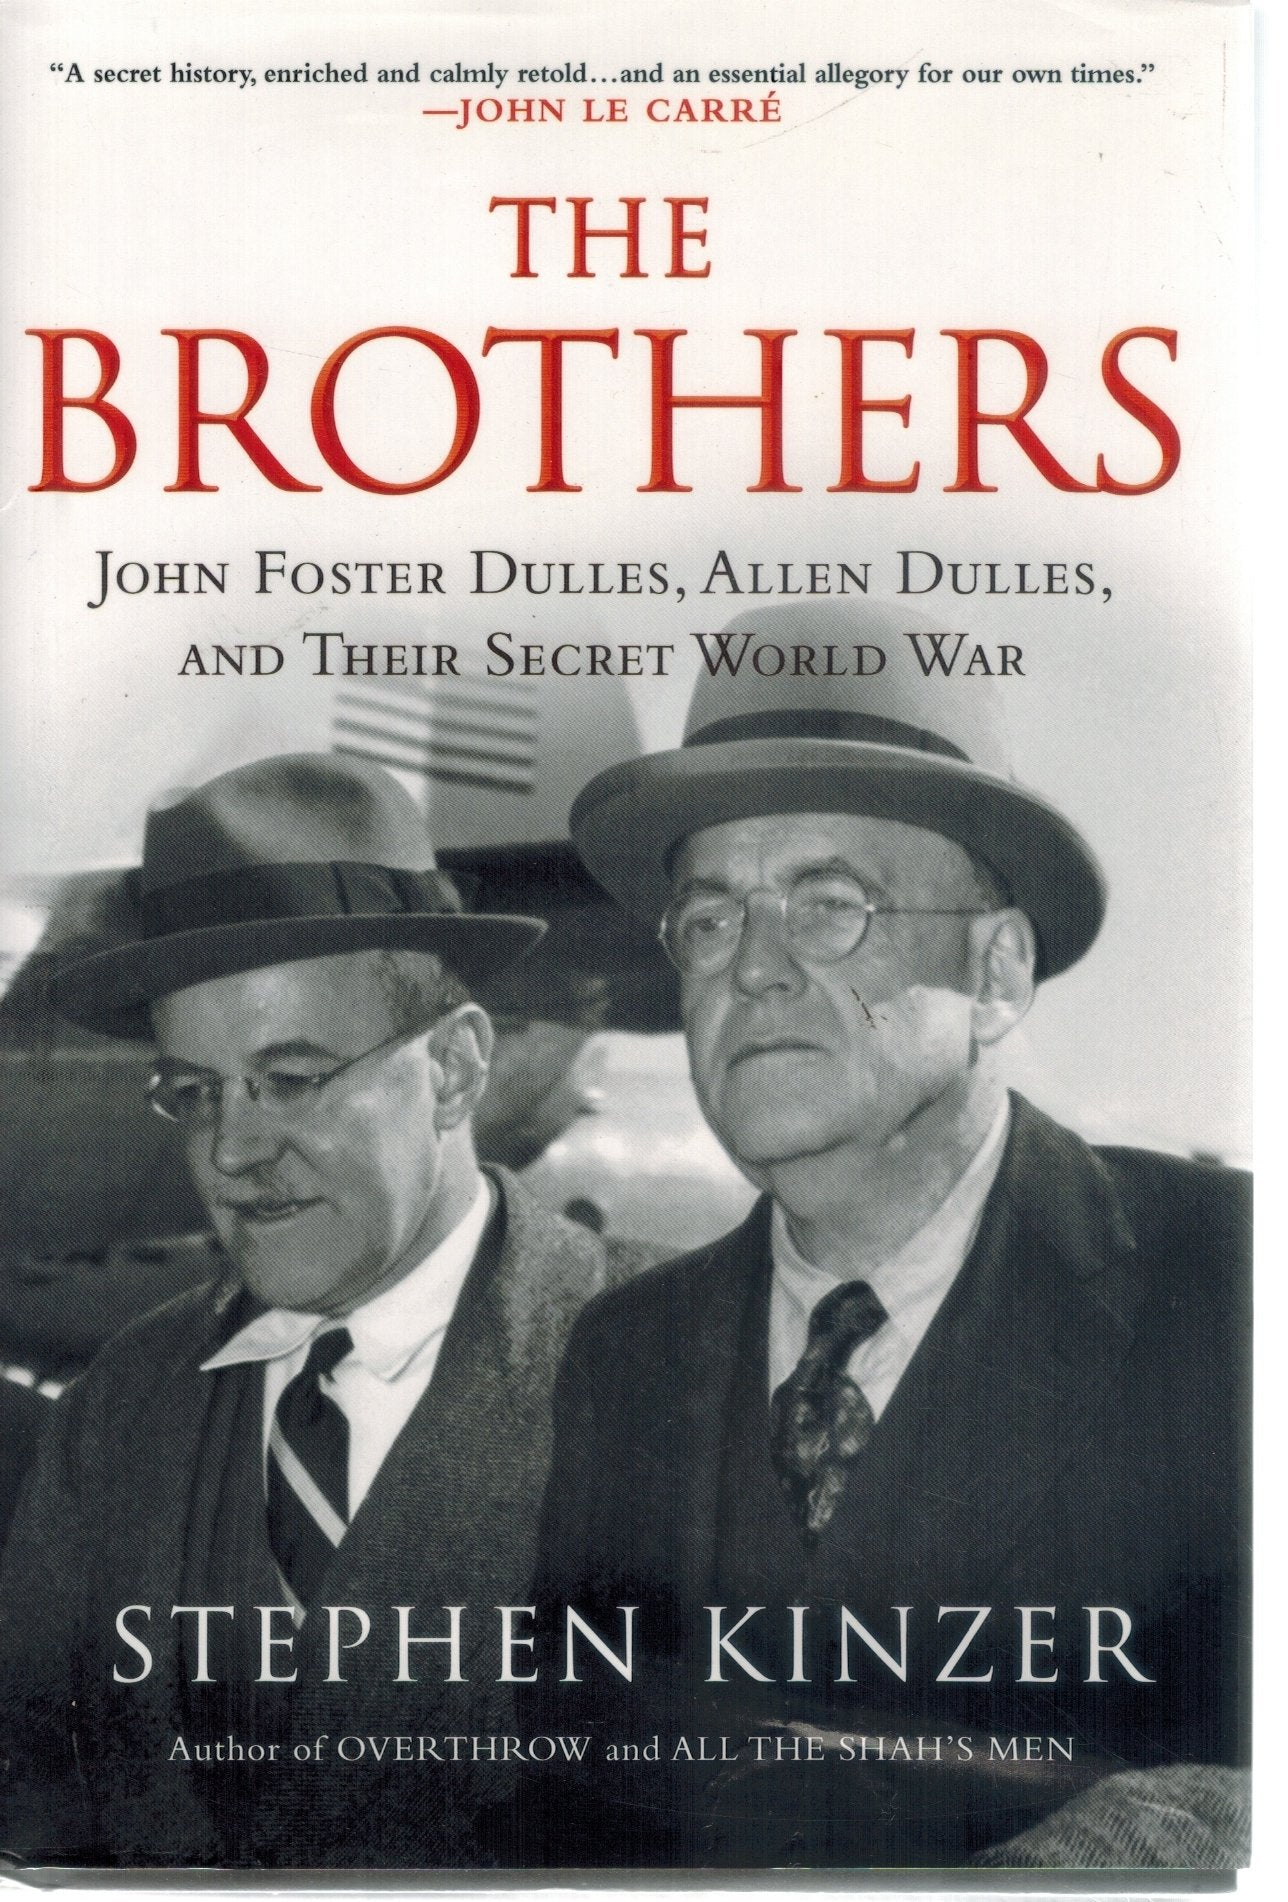 The Brothers  John Foster Dulles, Allen Dulles, and Their Secret World War - books-new